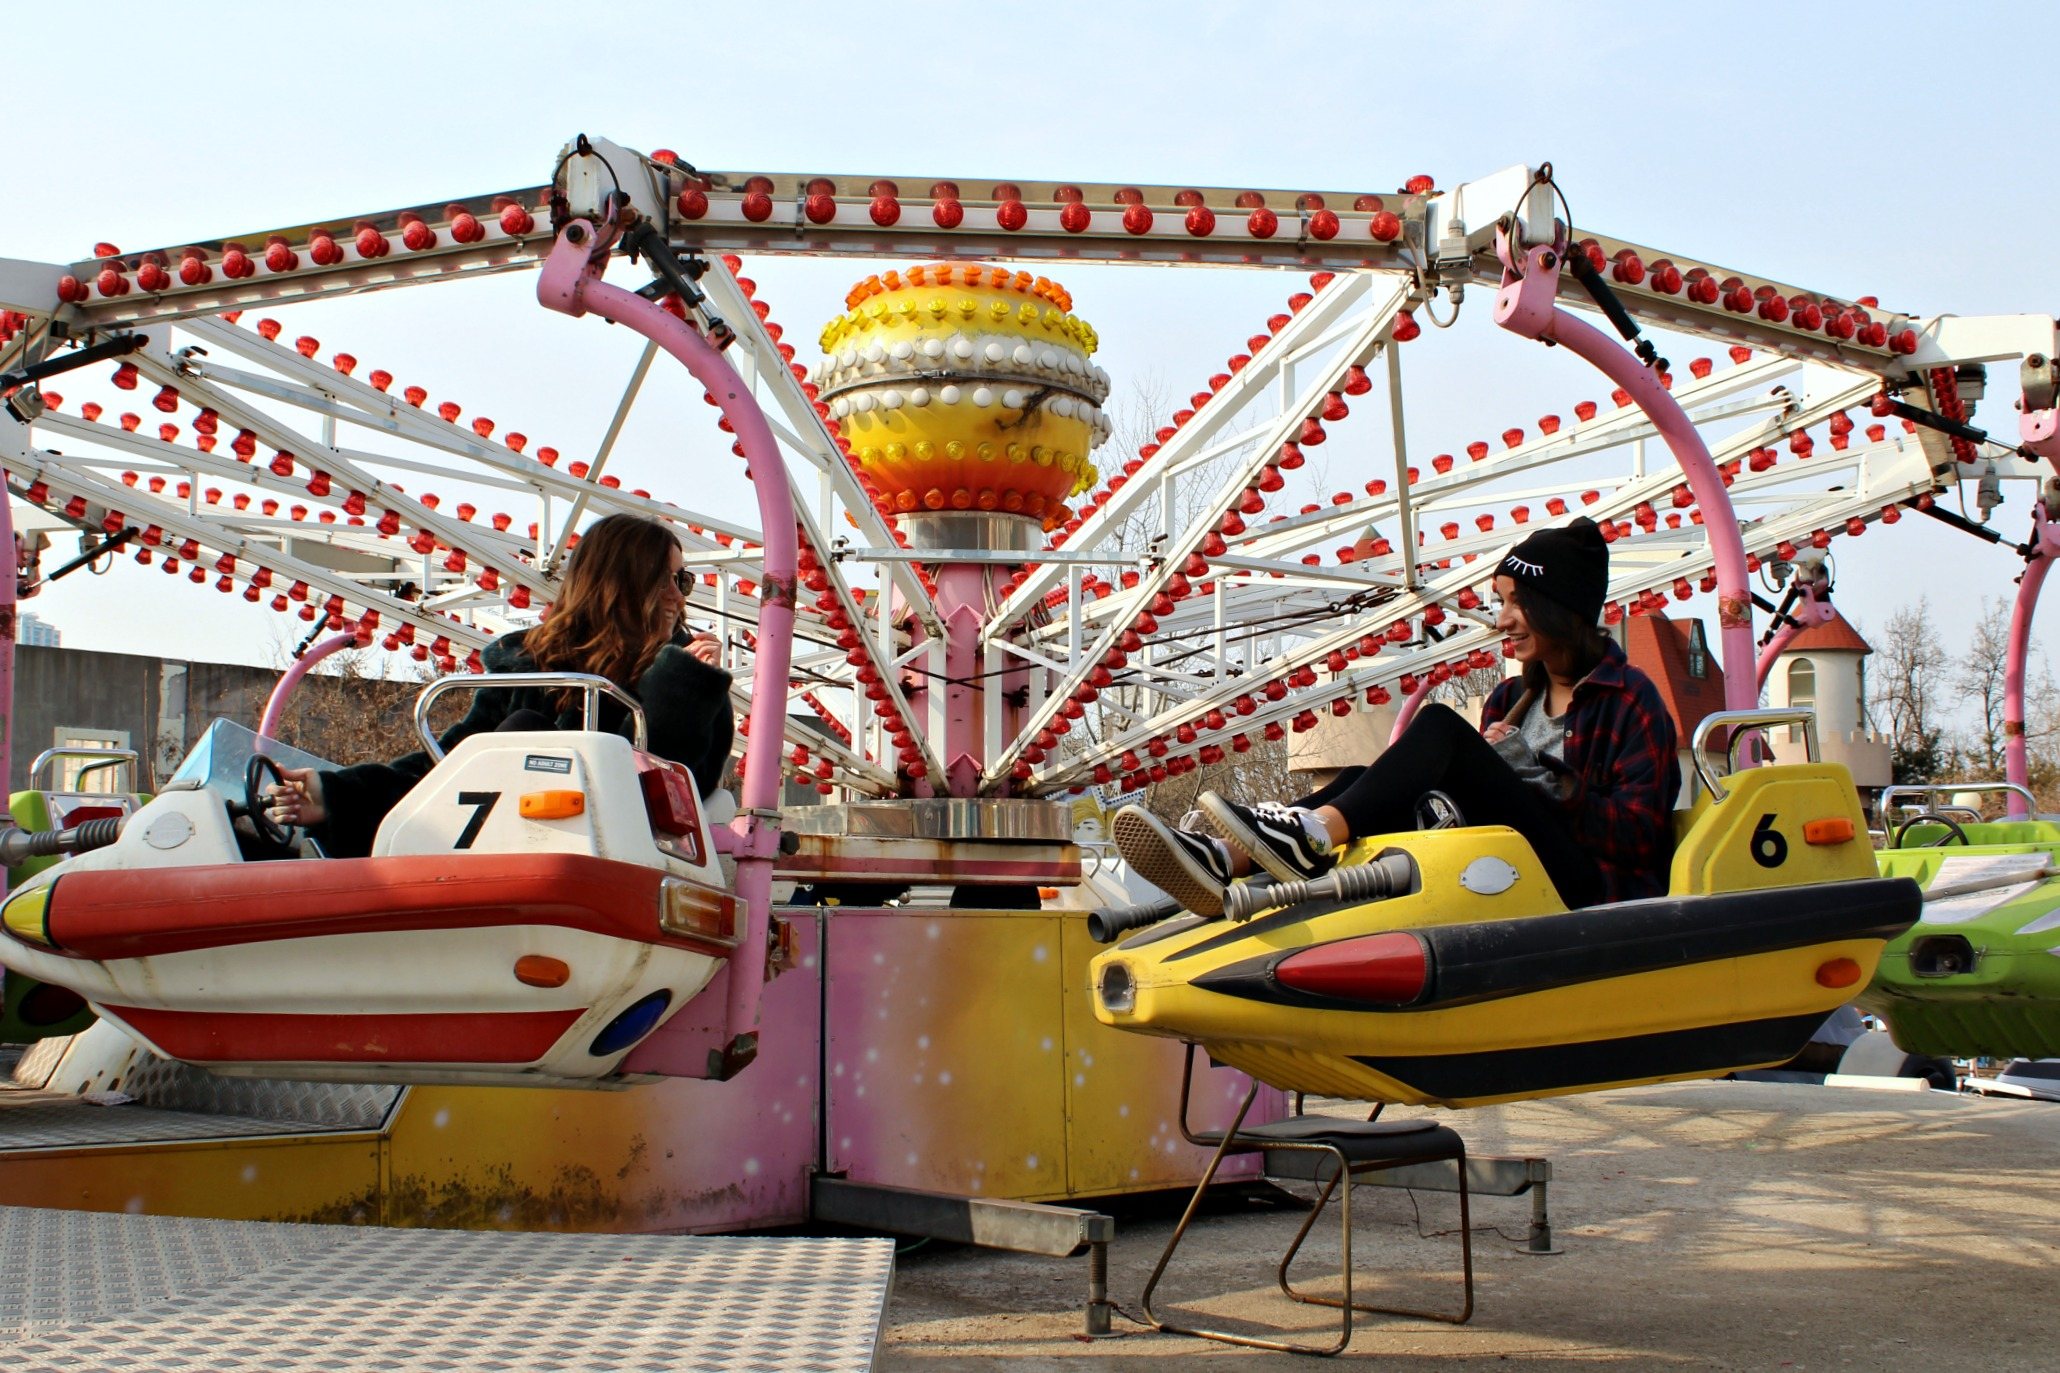 Yongma Land What To Expect At Seoul S Abandoned Amusement Park Silly Little Kiwi